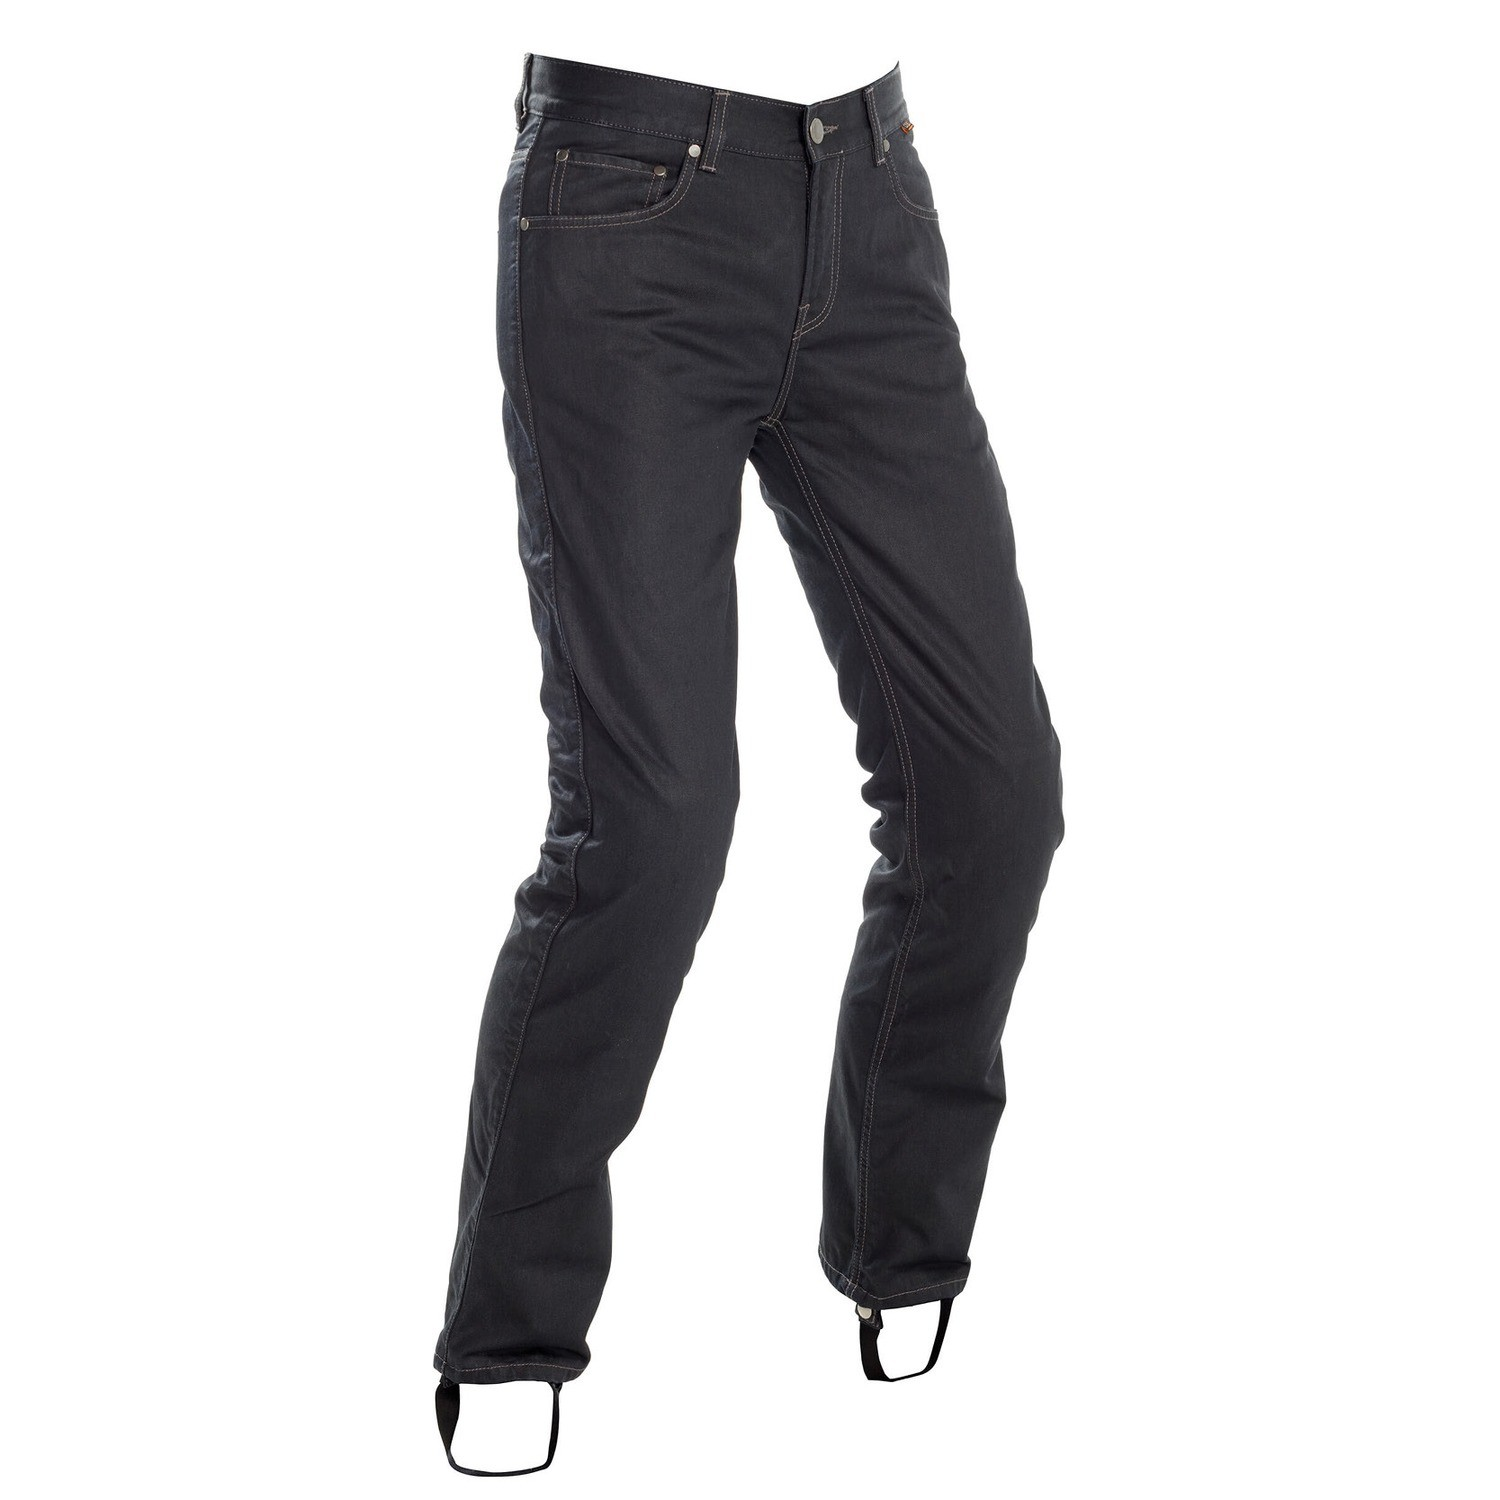 Cobalt Anthracite Riding Jeans Men - Short